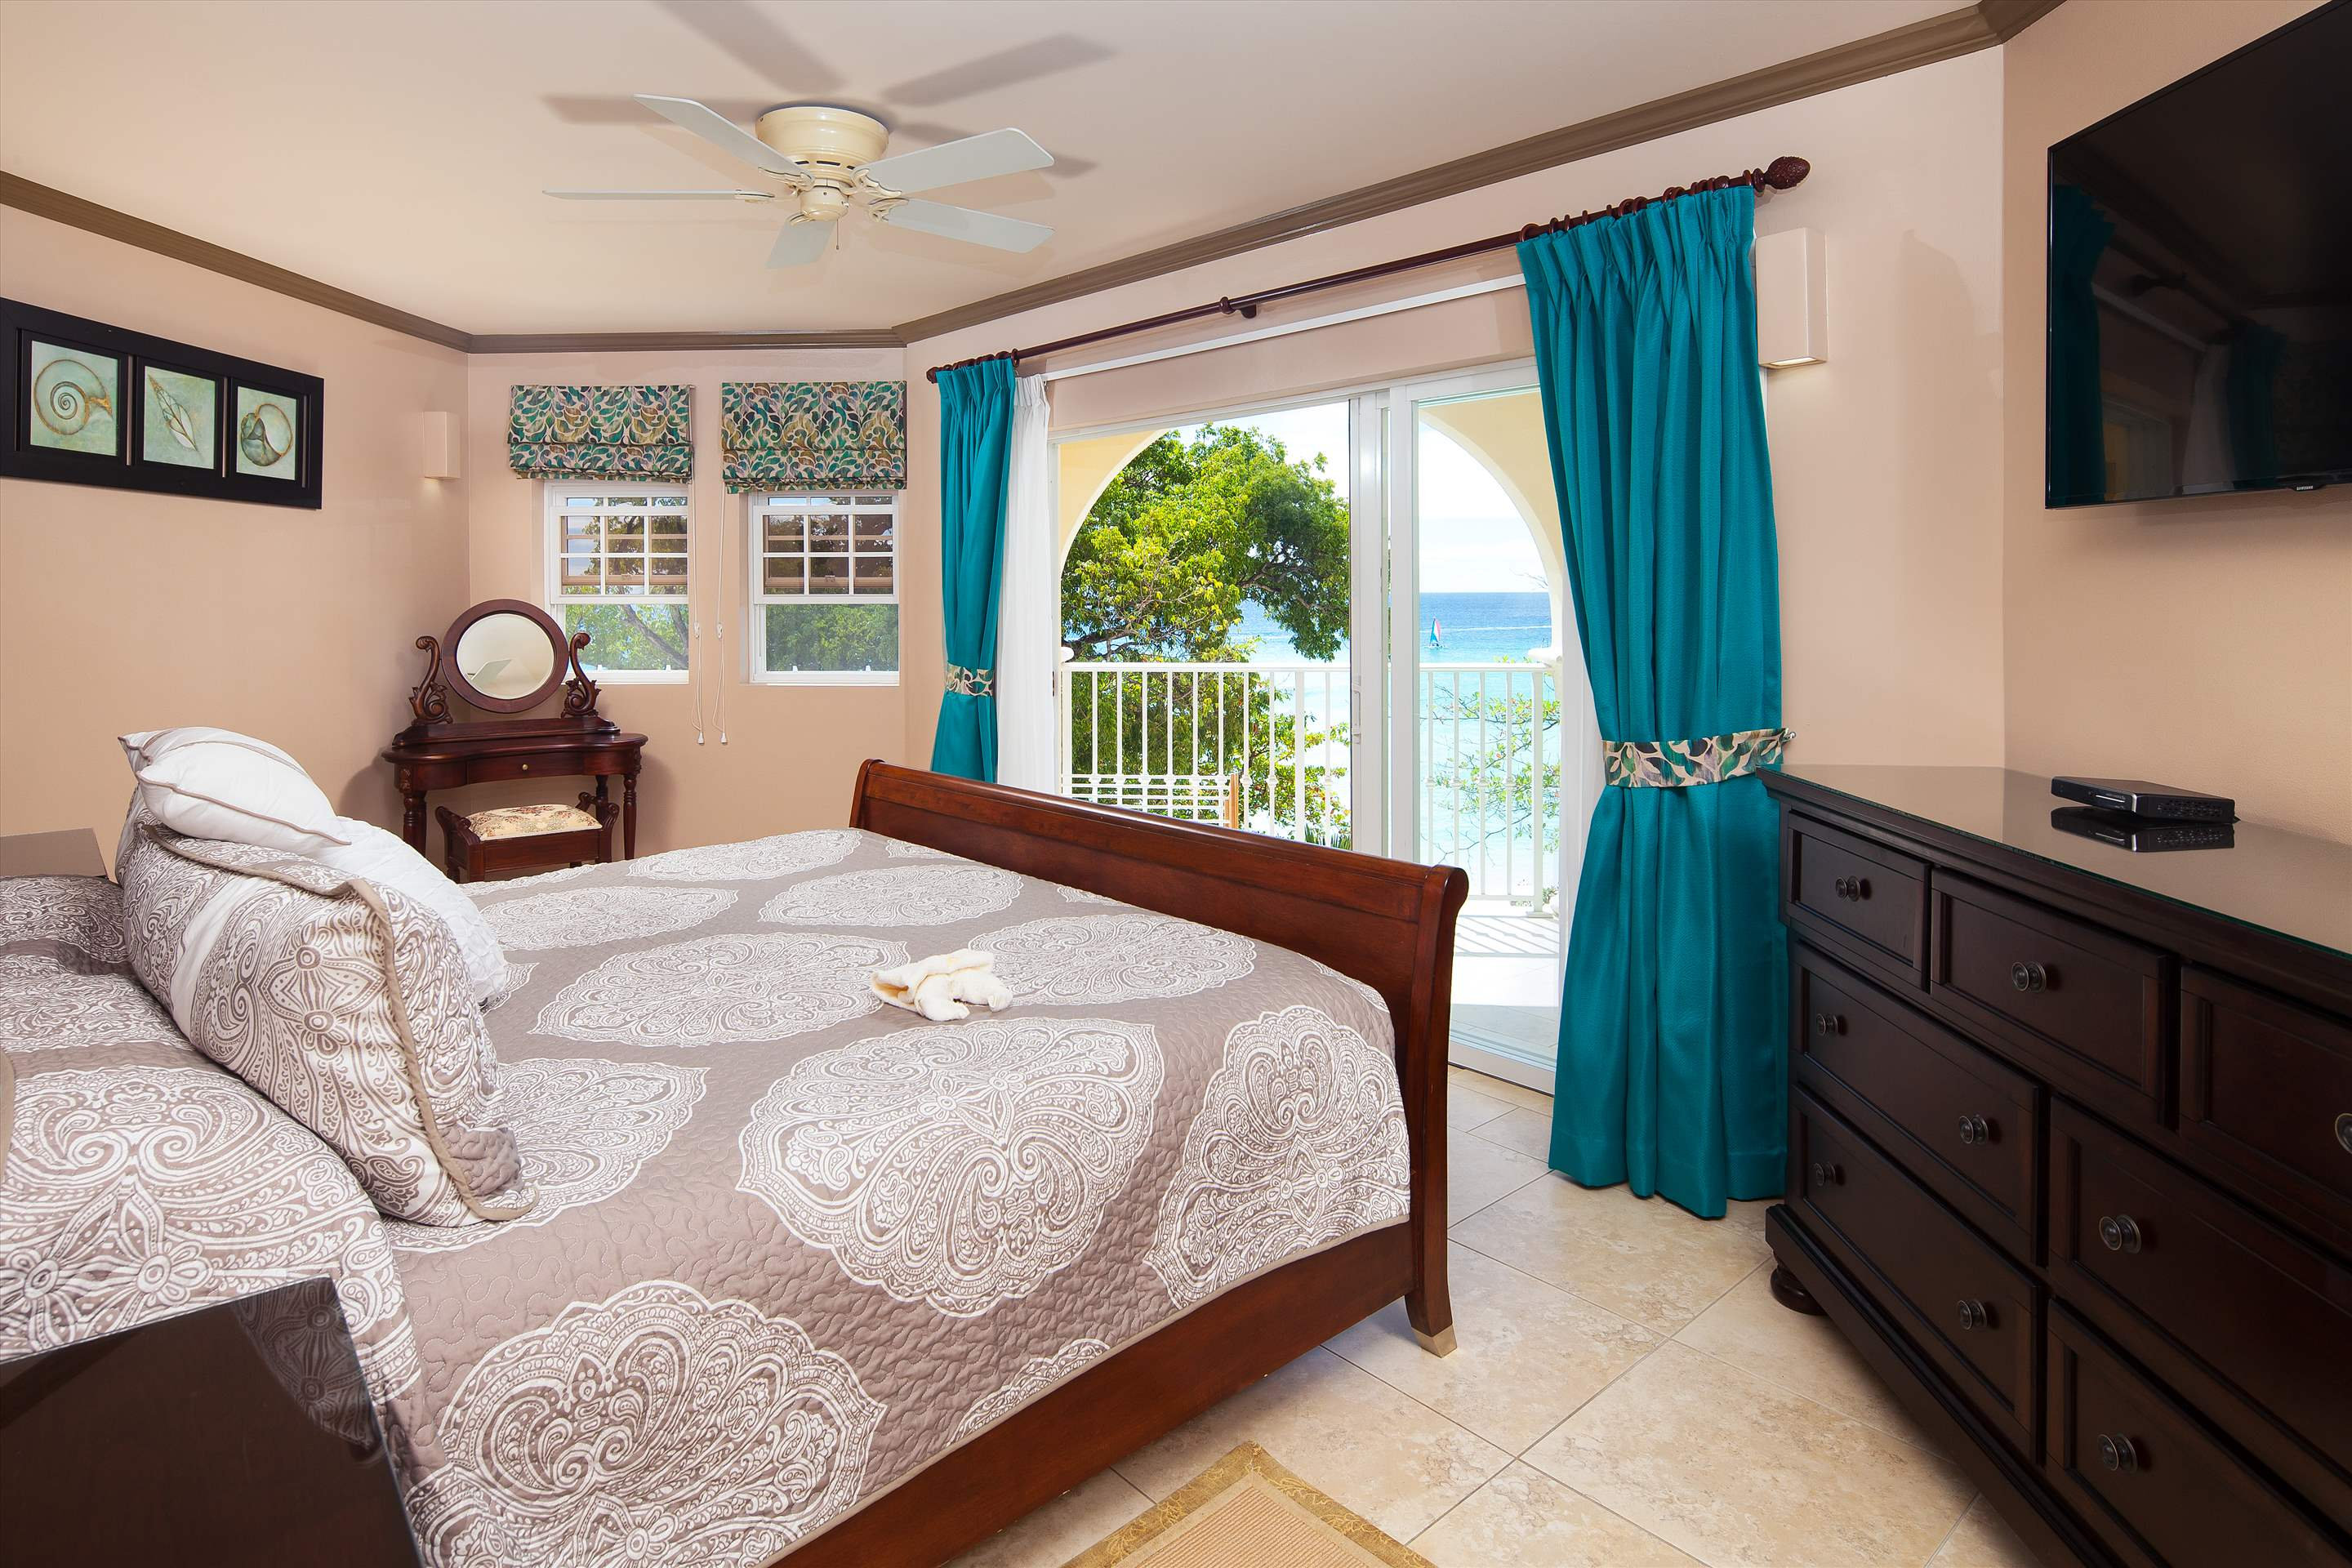 Sapphire Beach 309, 2 bedroom, 2 bedroom apartment in St. Lawrence Gap & South Coast, Barbados Photo #11